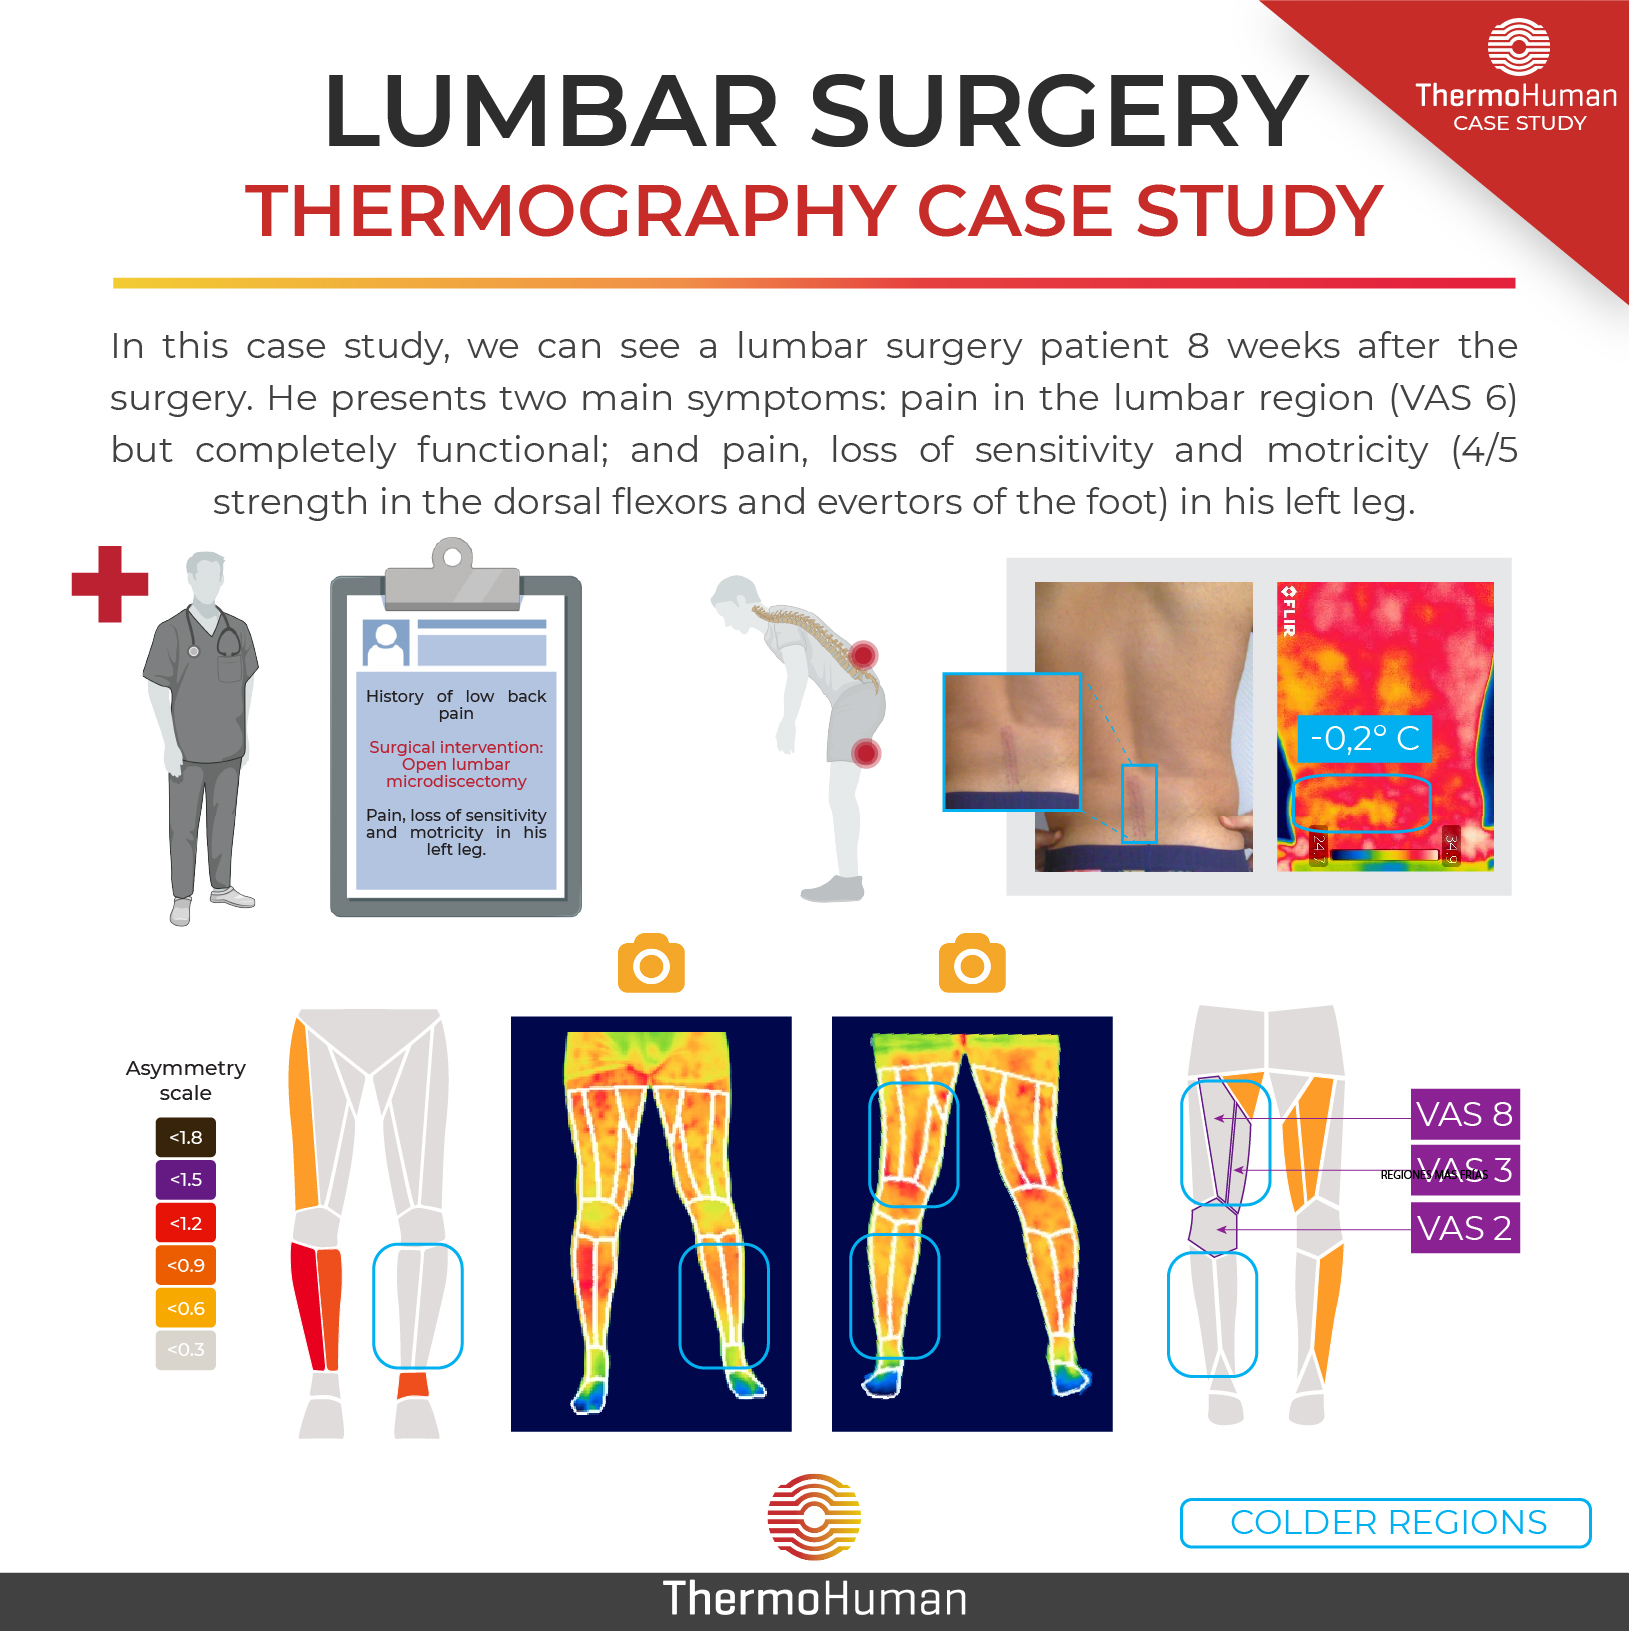 Lumbar surgery seen with thermography: Study case